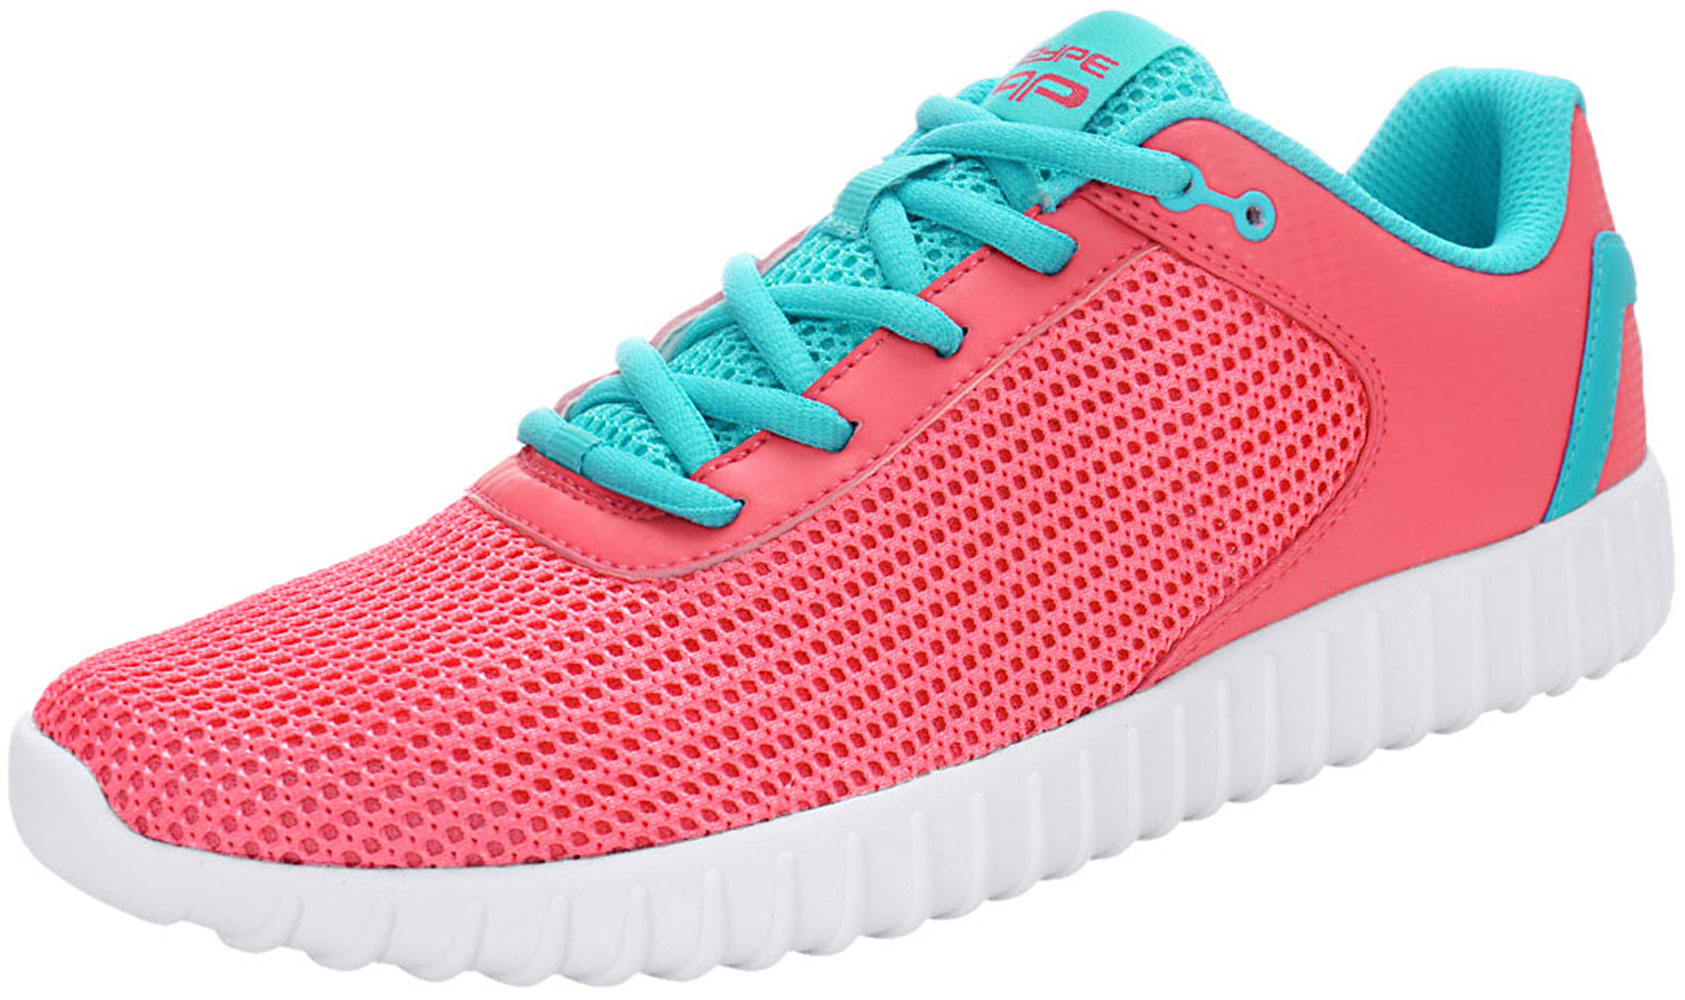 PYPE Women Contrast Color PU Panel Mesh Training Shoes Pink US 10